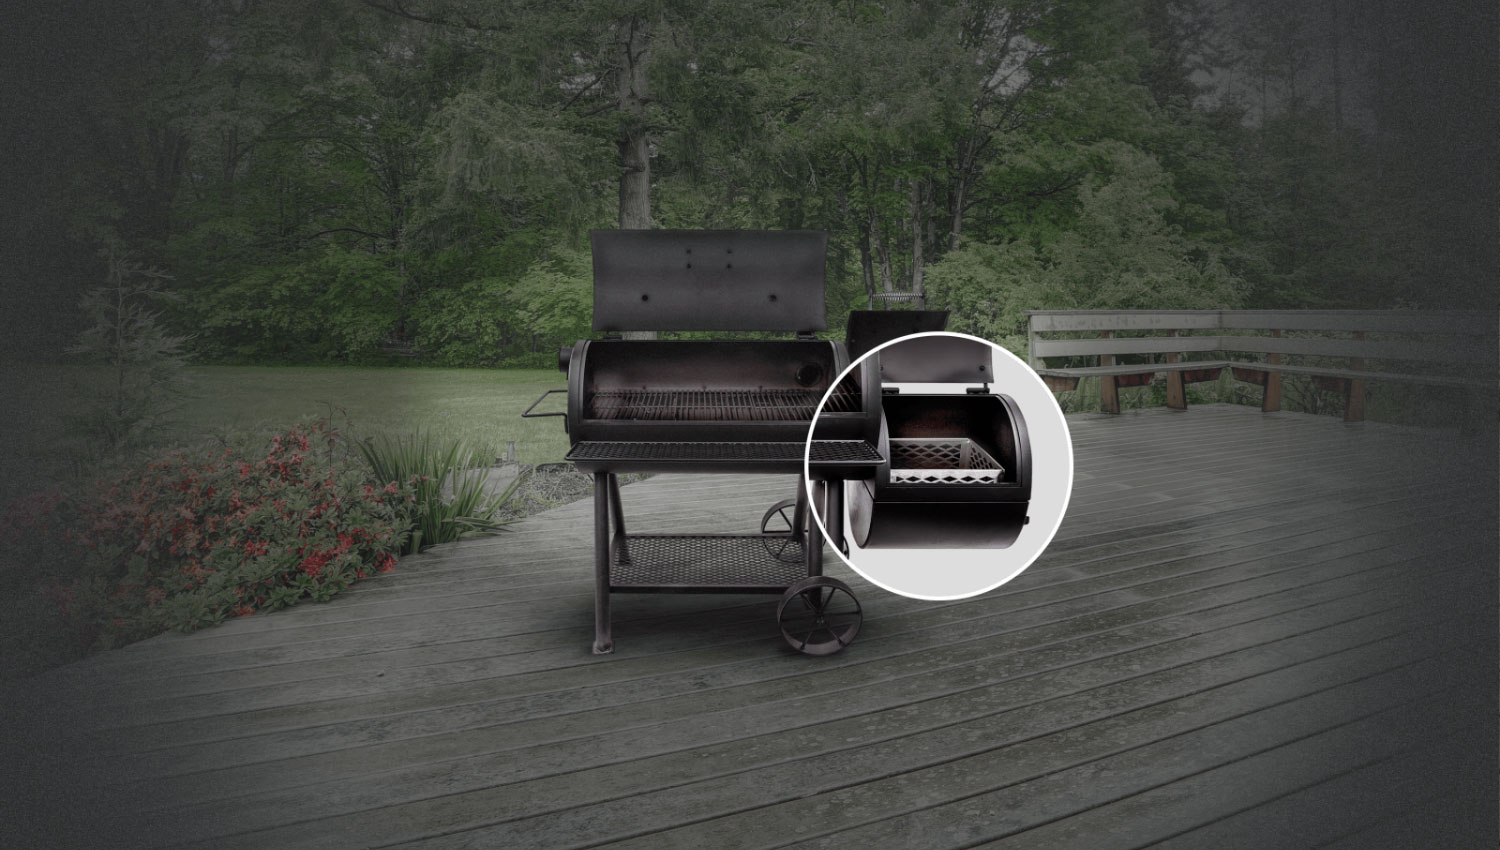 Large charcoal basket provides a more efficient burn, easier tending and quicker clean-up.